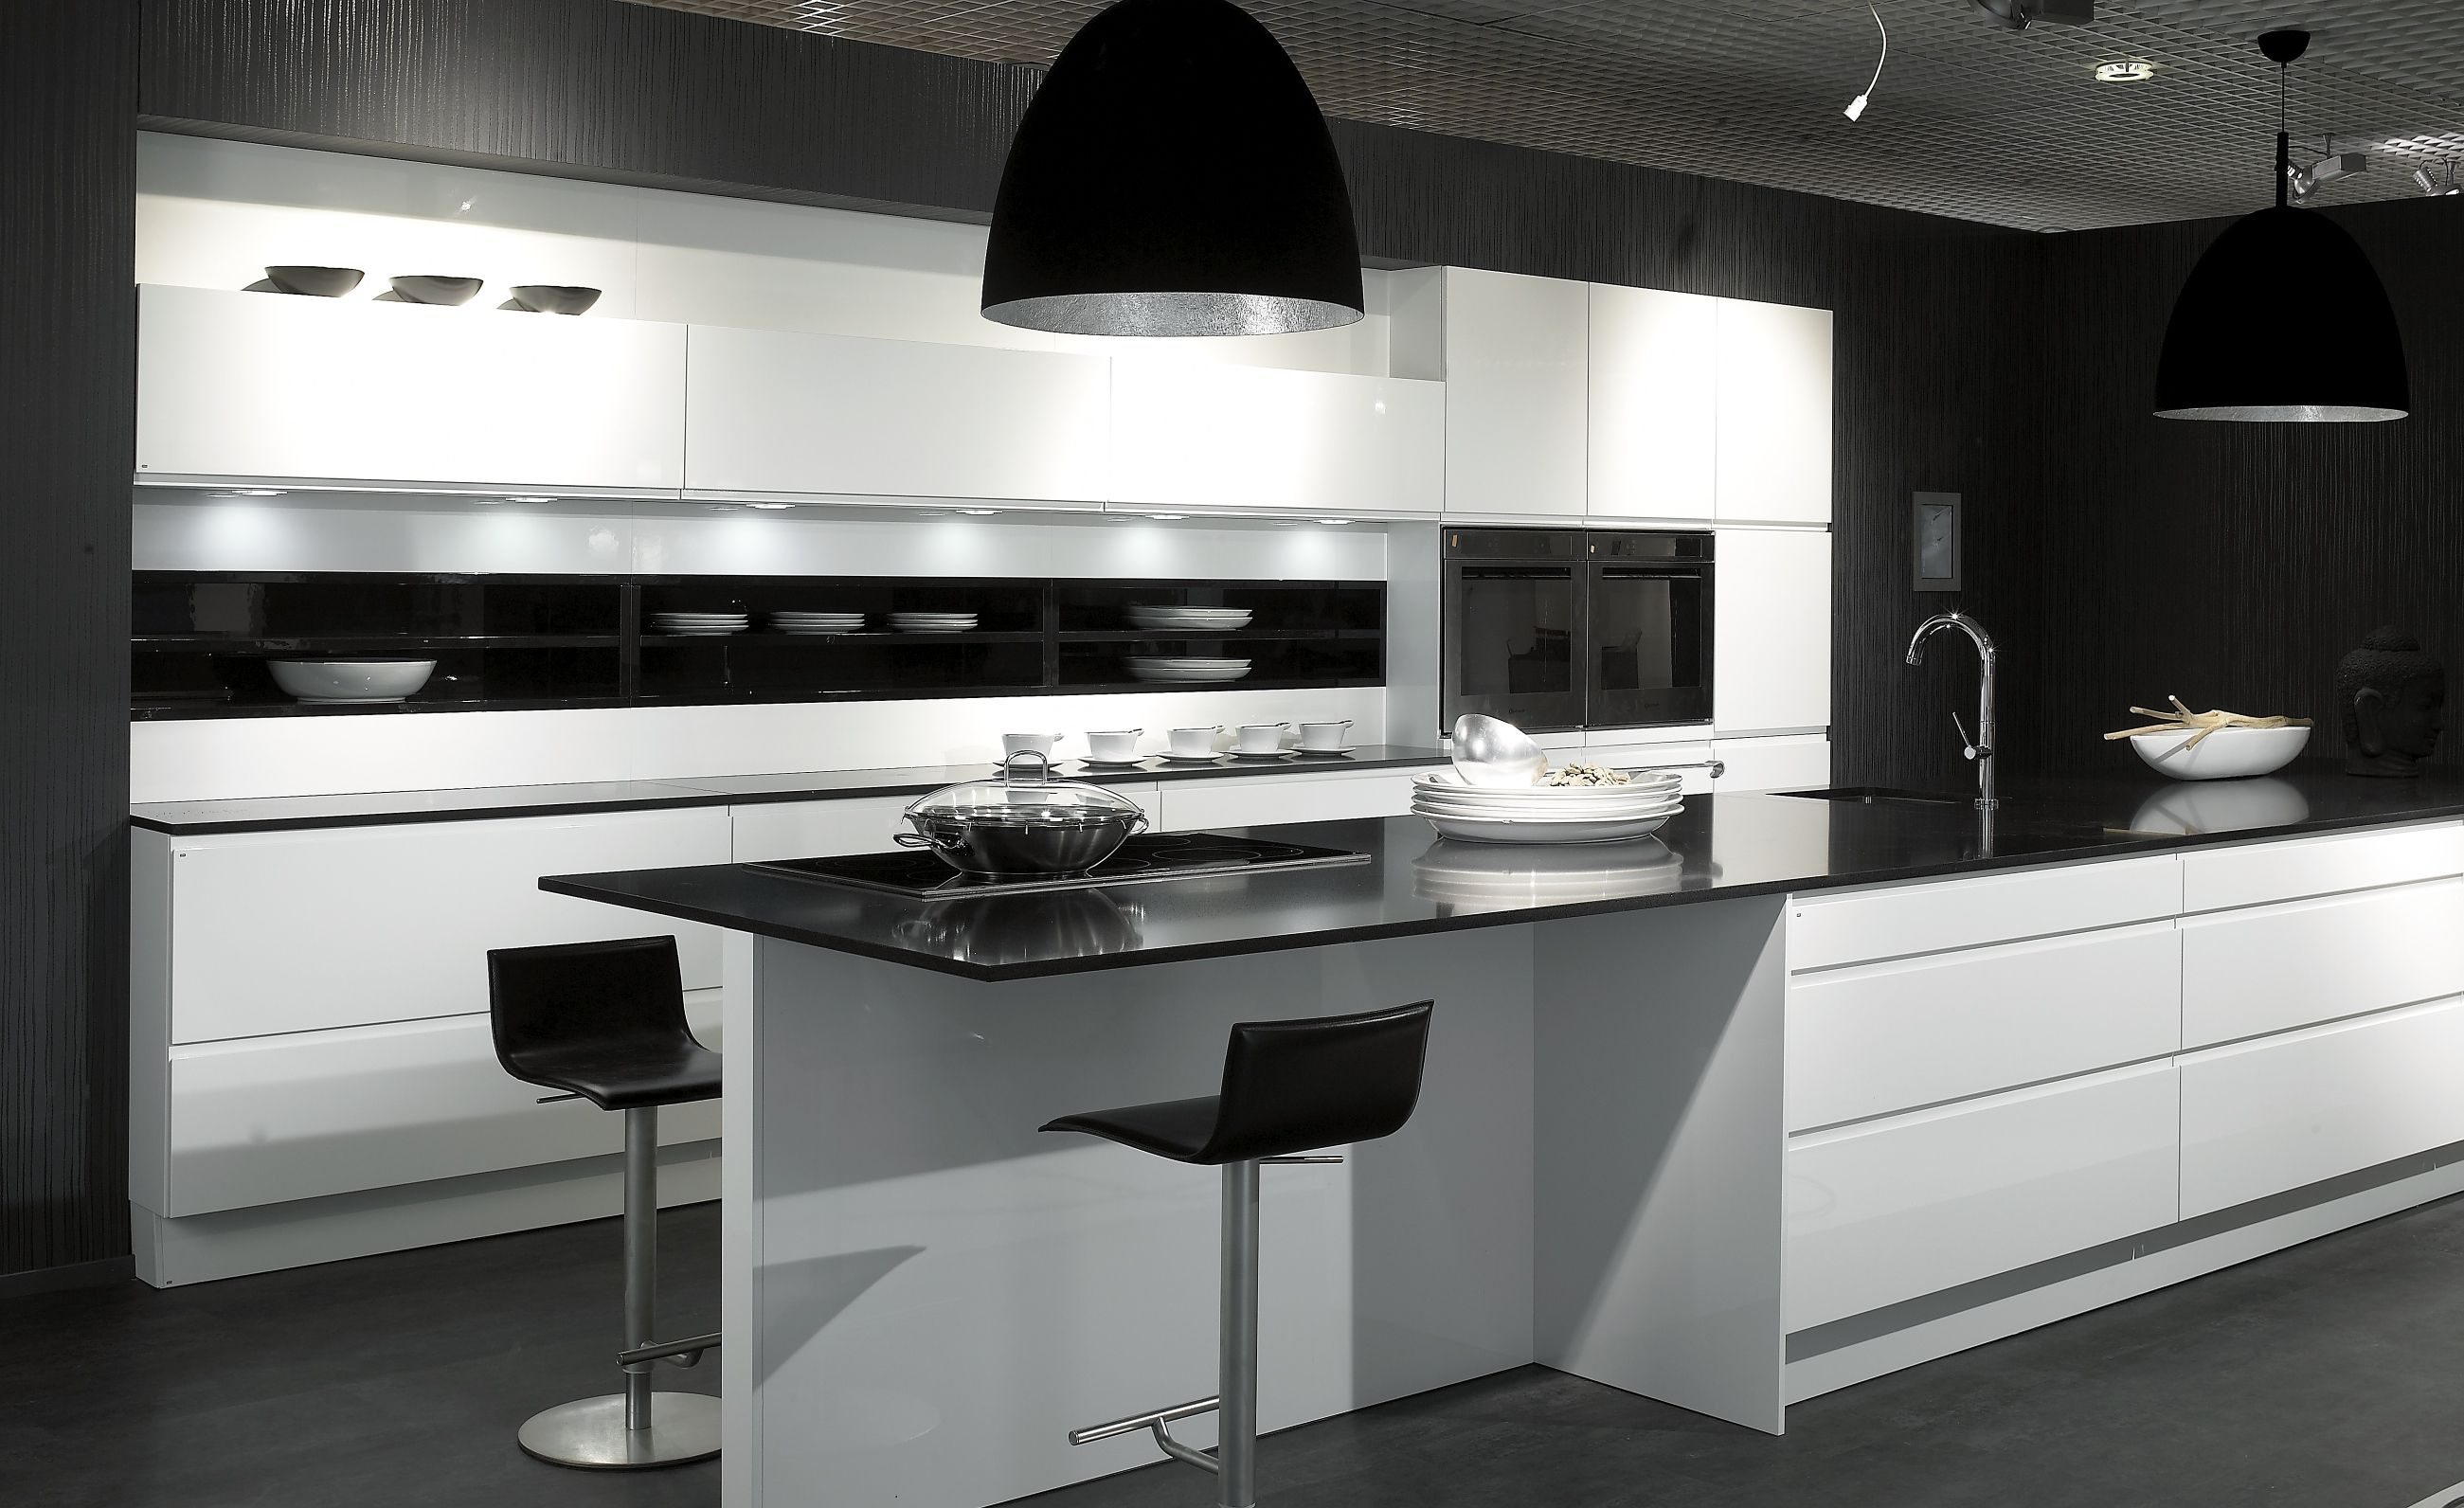 Cocina en blanco y negro muebles de la serie wellmann de for Singular kitchen